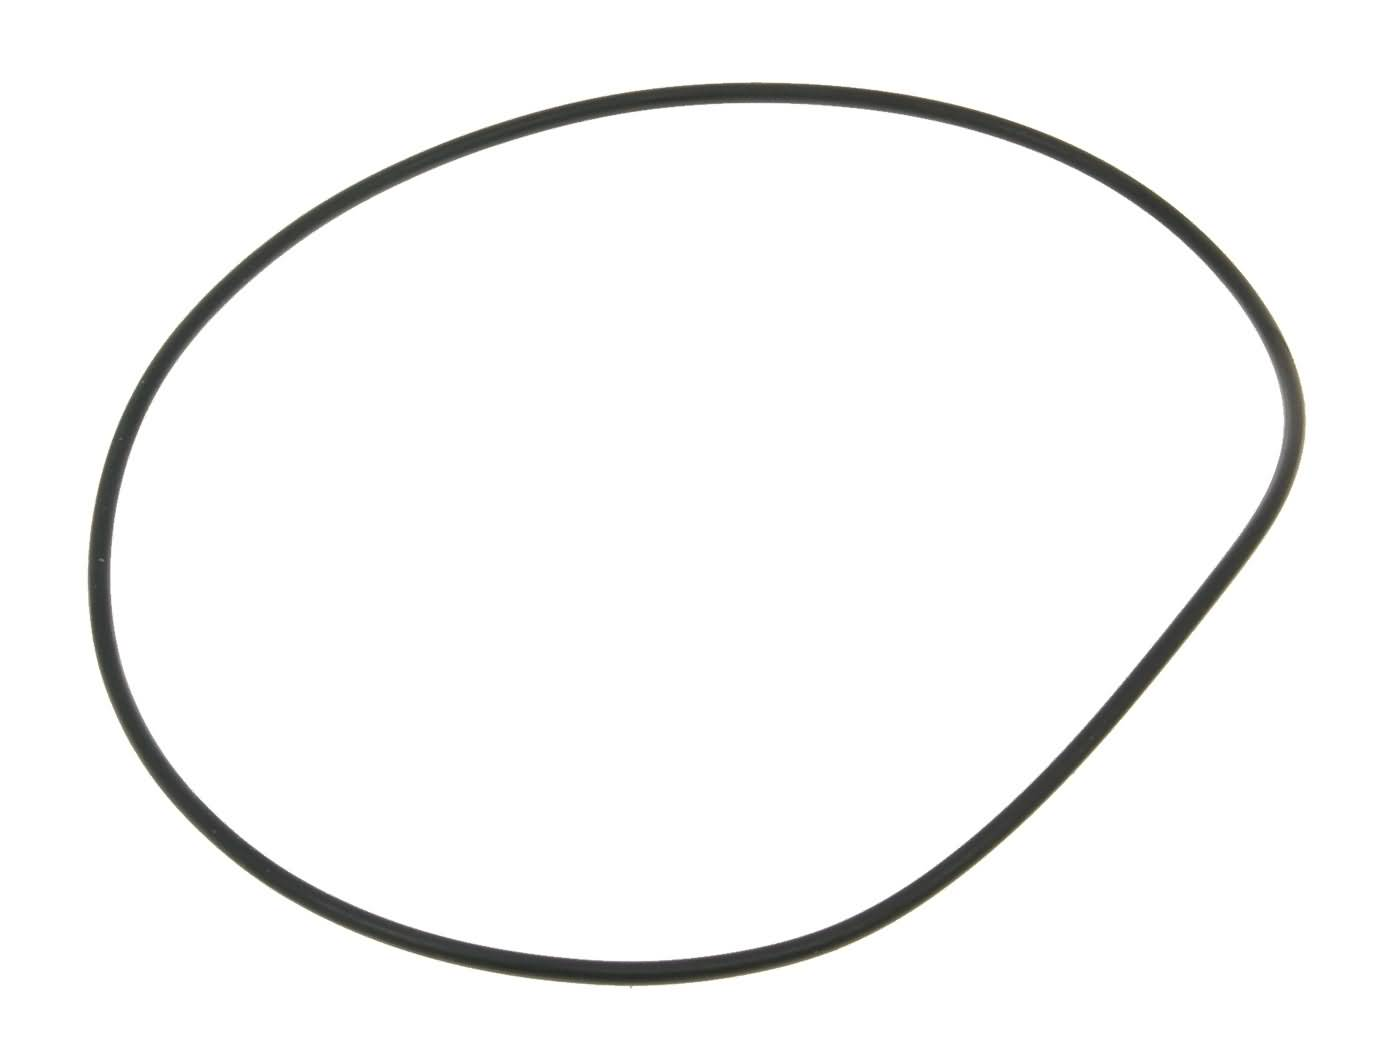 engine gasket set for Sym Fiddle II, Orbit 1, Symply 50 4